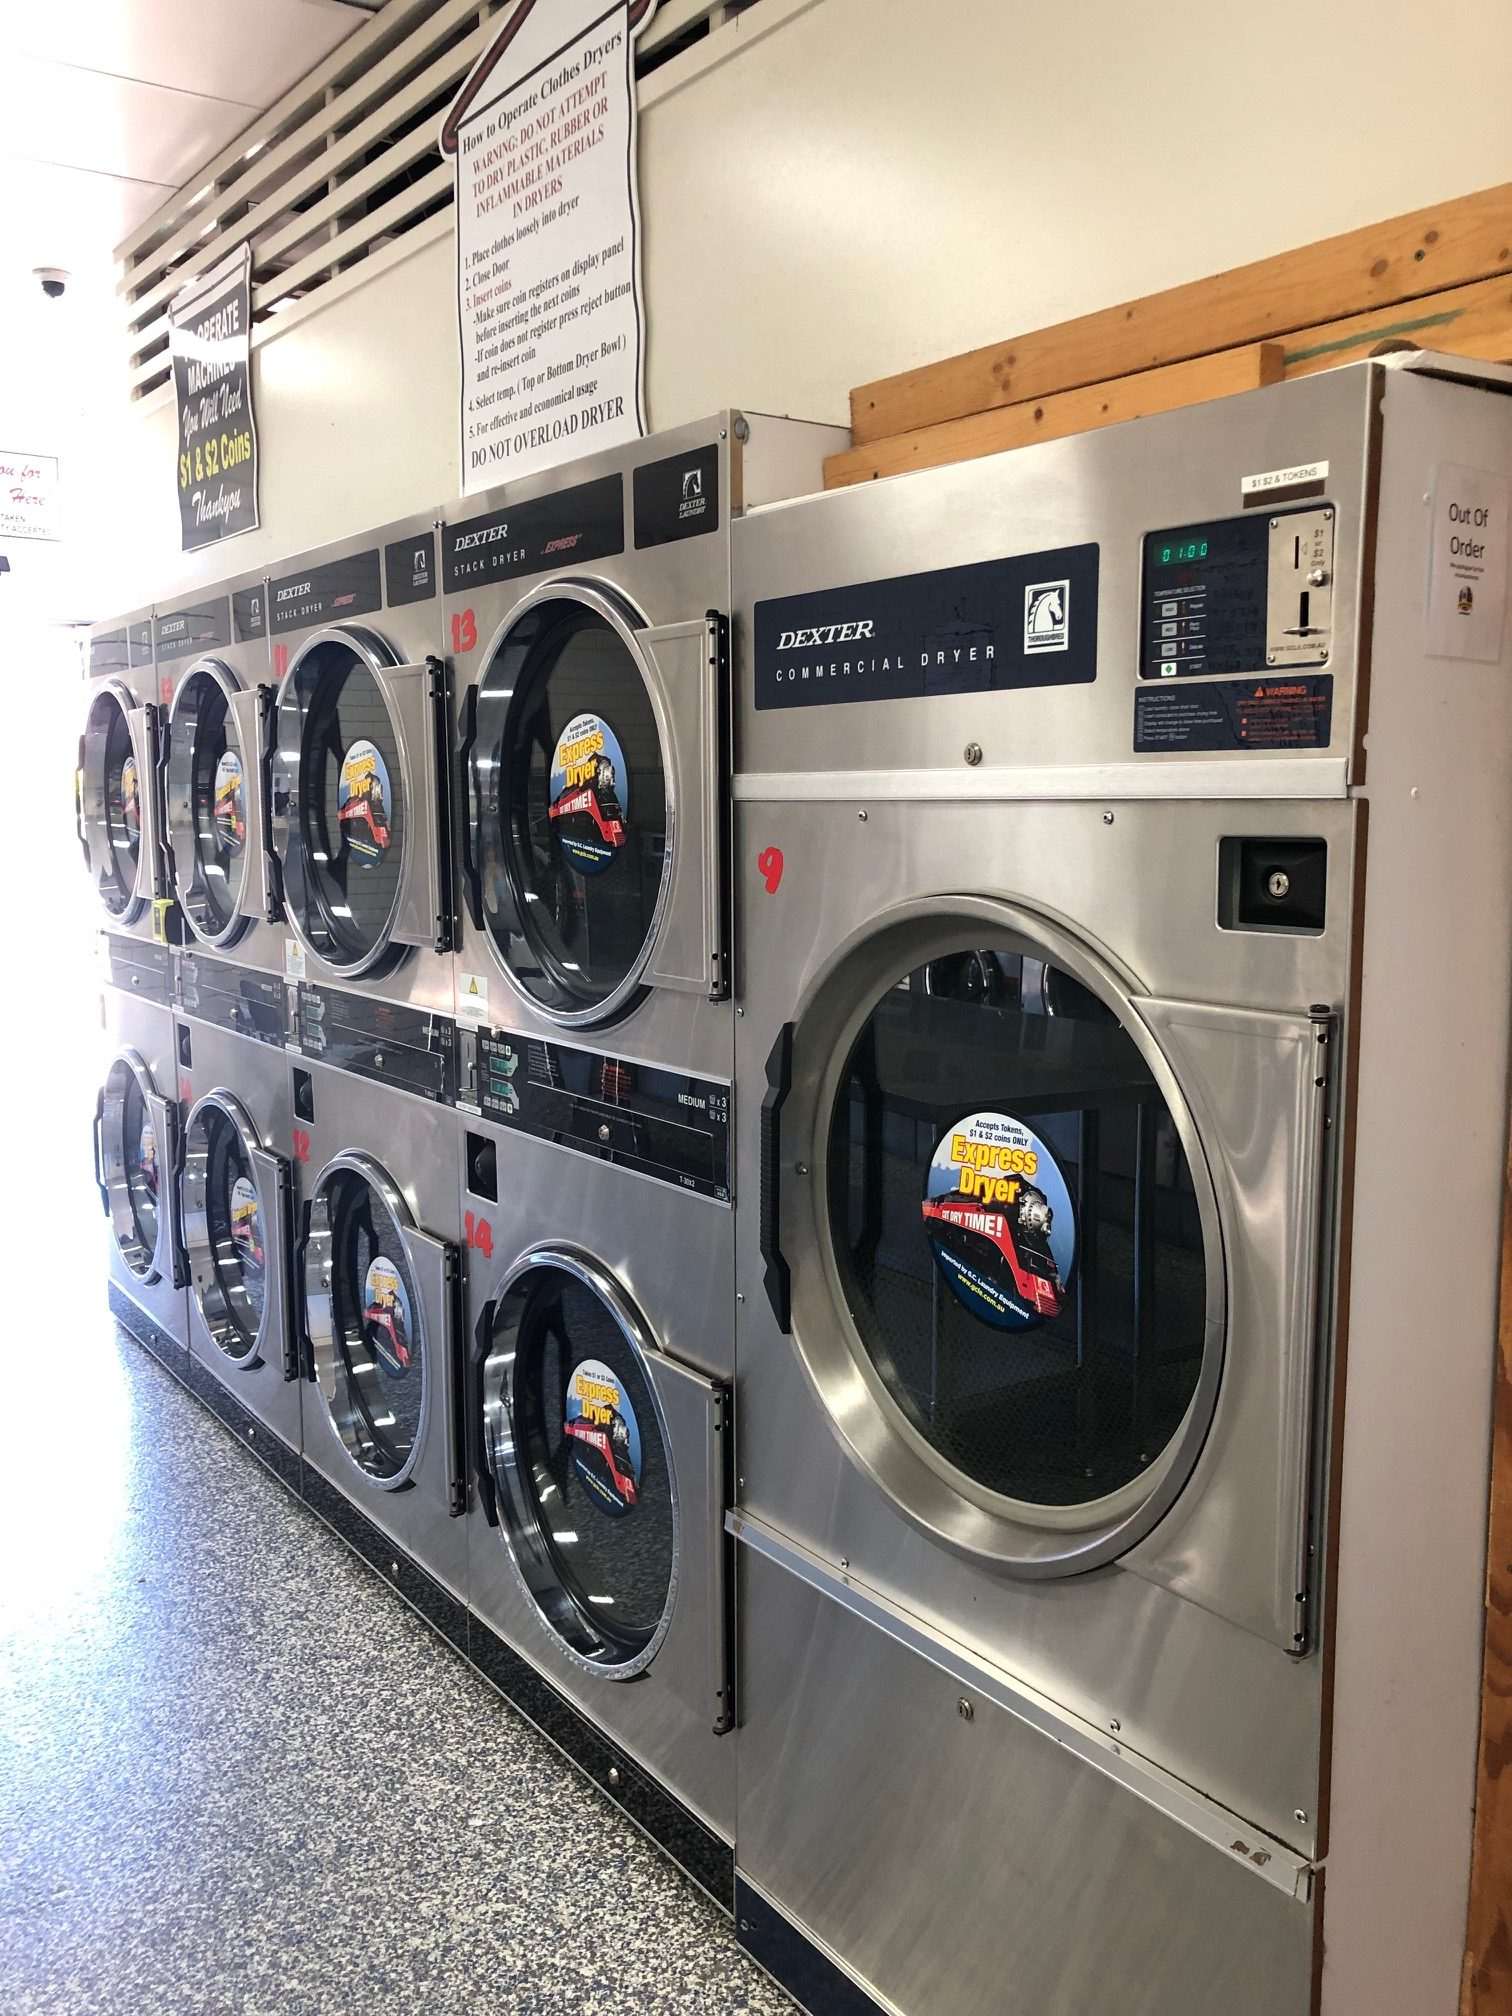 Laundromat   All Fresh Laundry   Your Local laundromat   All